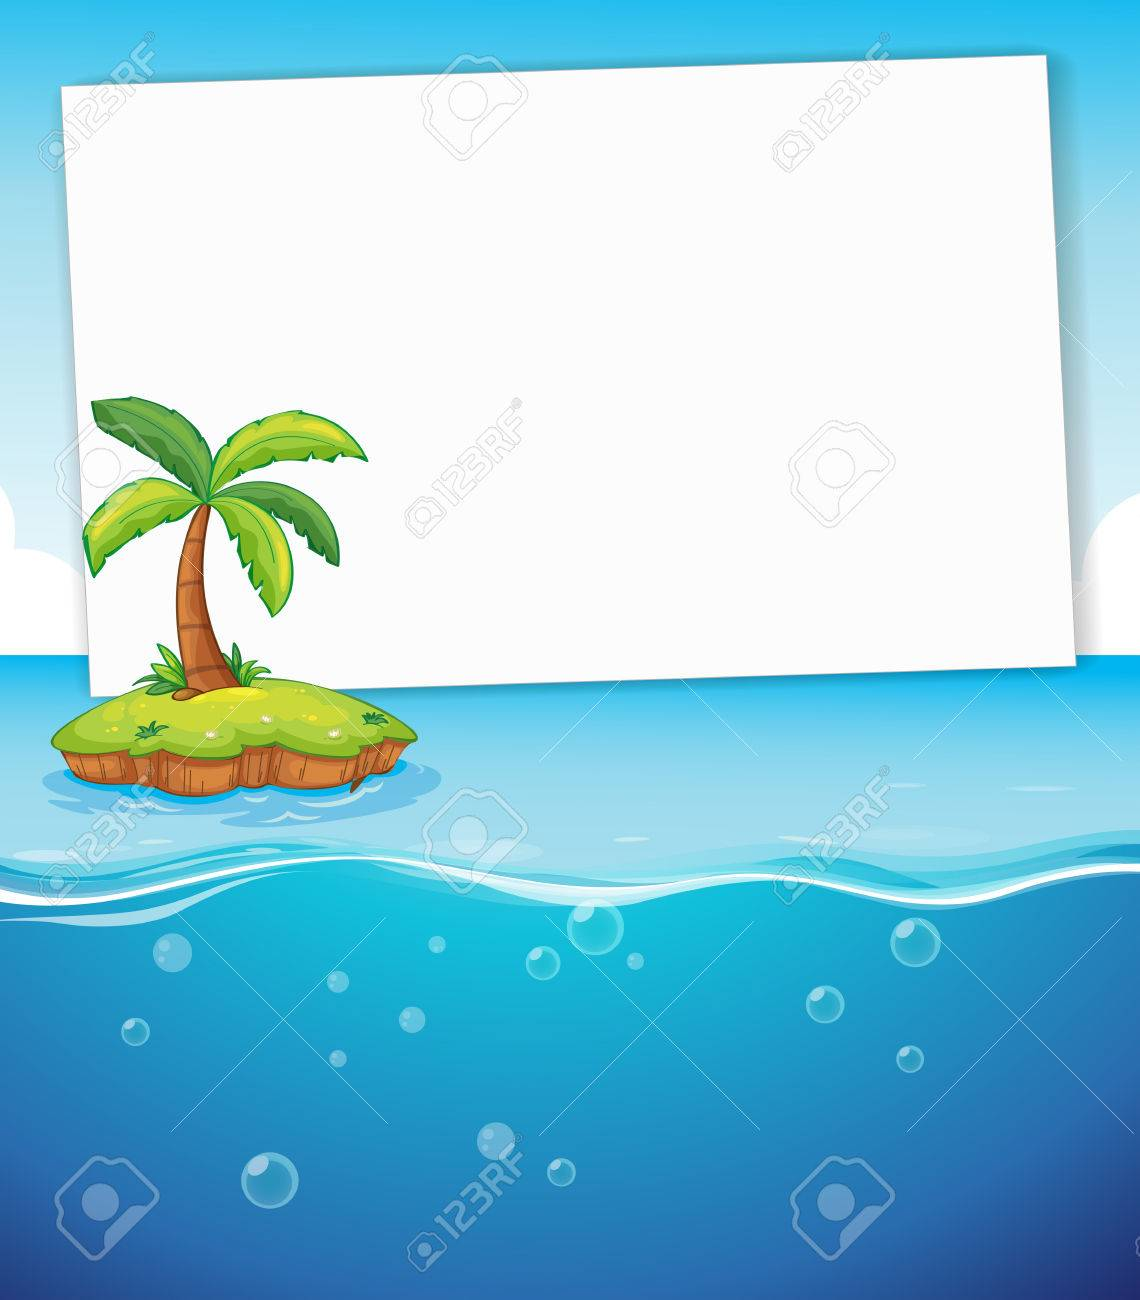 1140x1300 Blank Banner With Island And Ocean Background Royalty Free